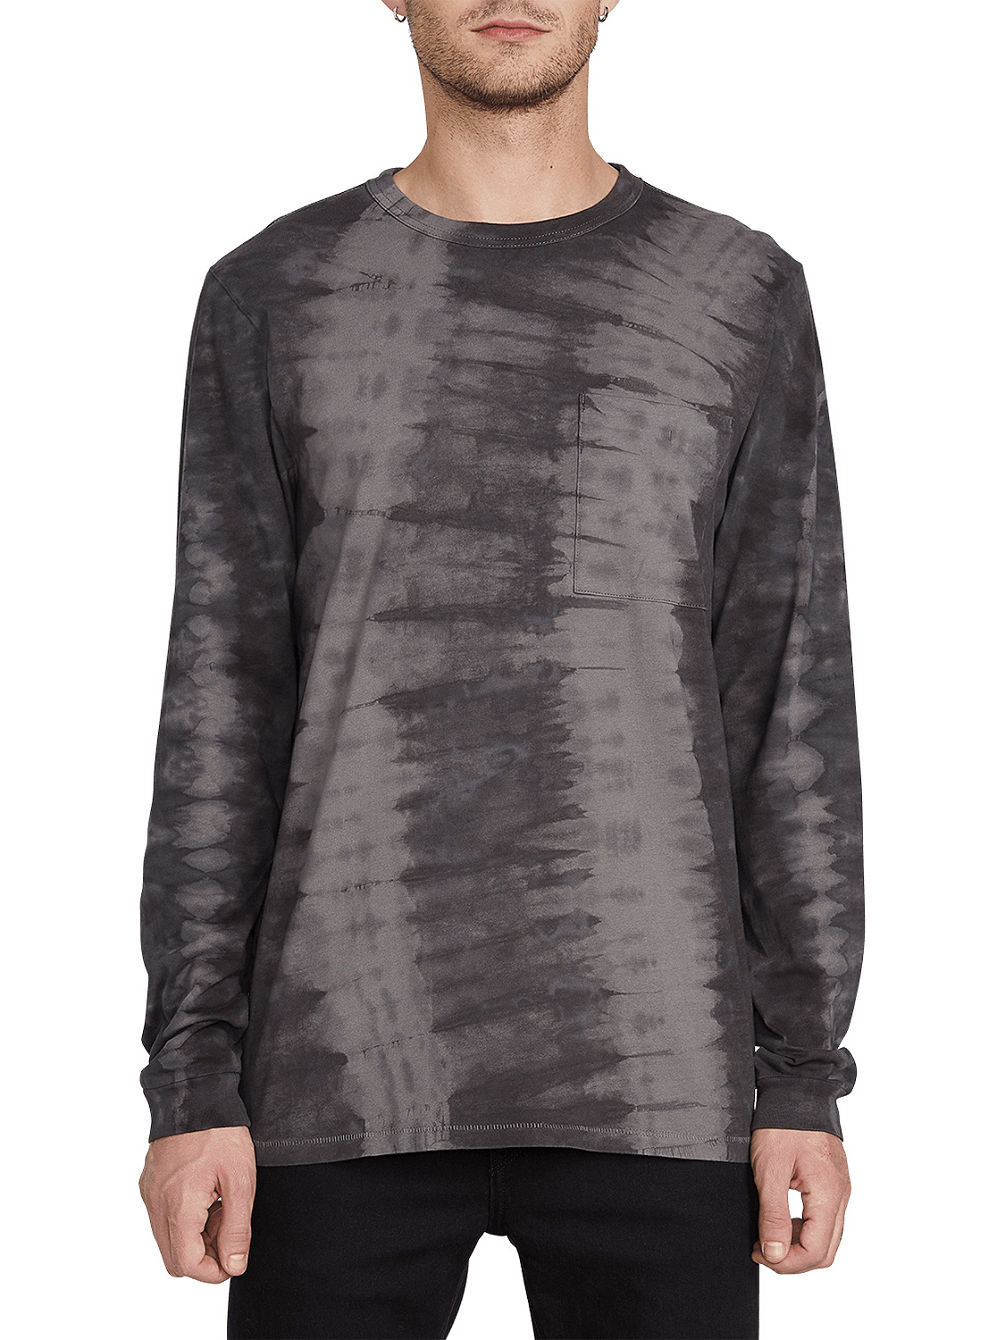 Chill Dye T-Shirt LS